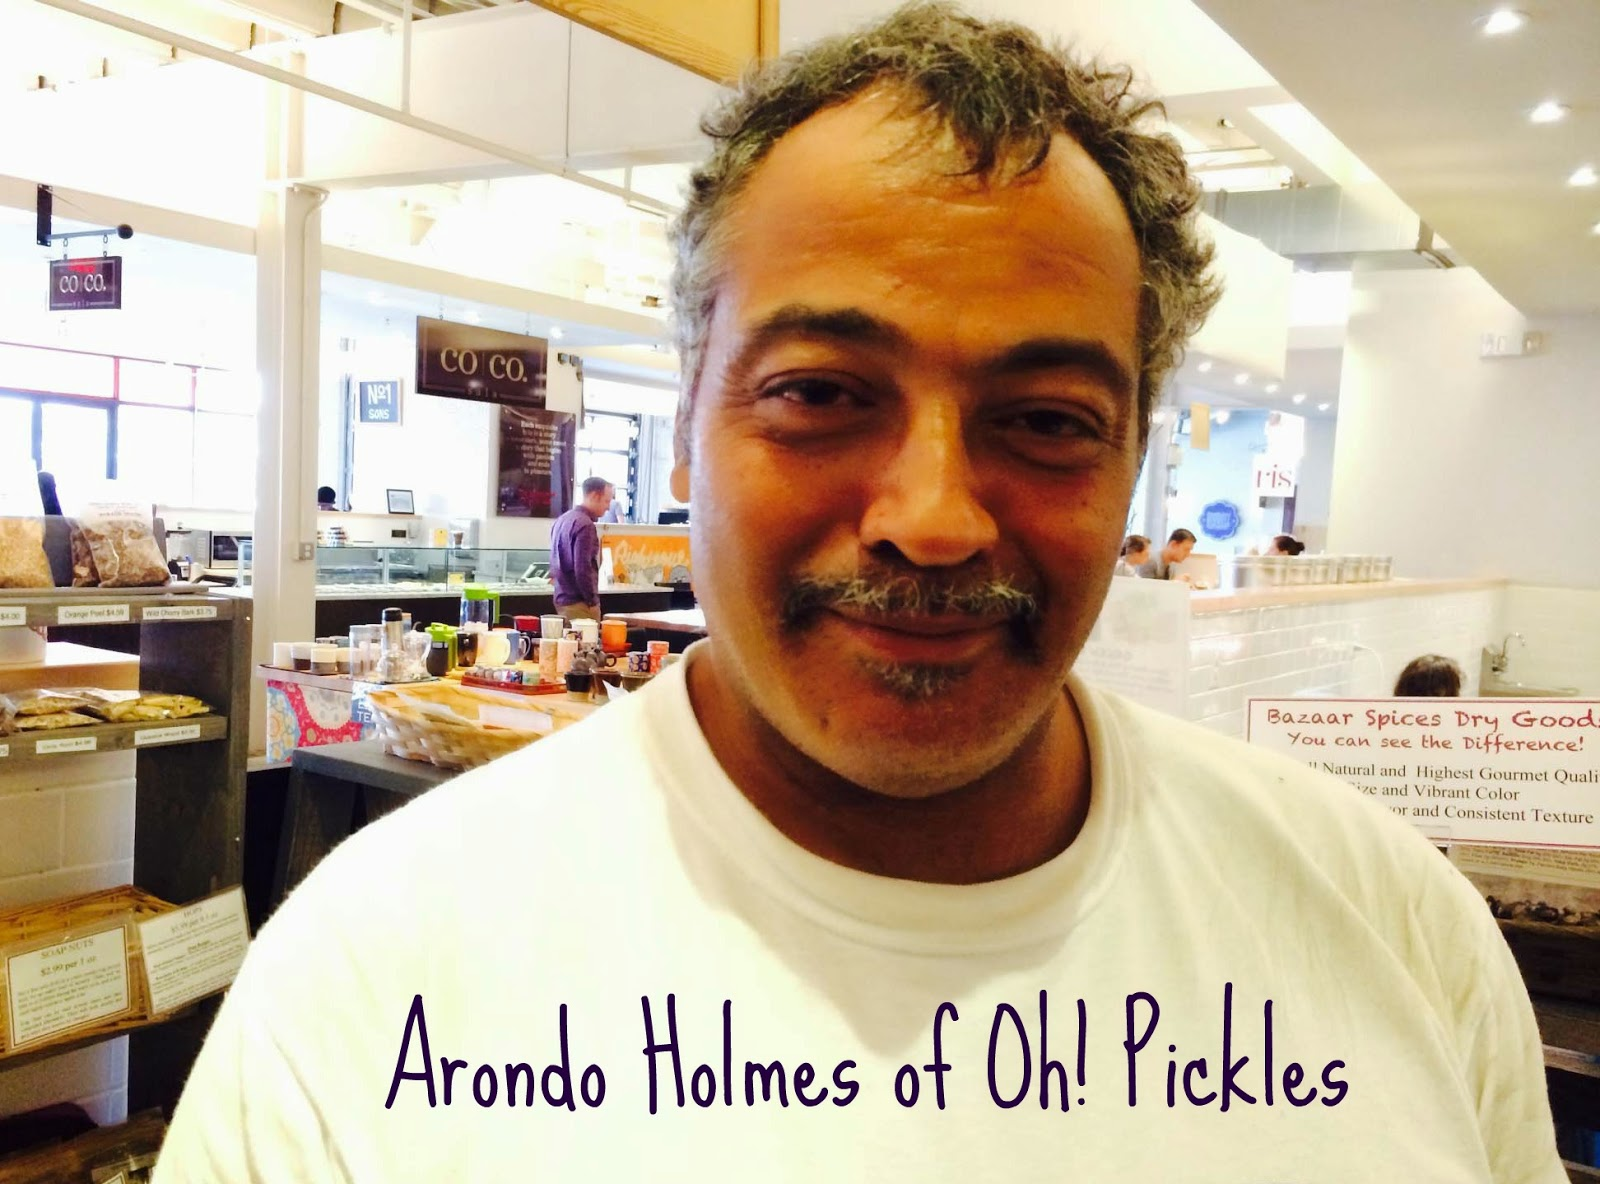 Arondo Holmes of Oh! Pickles Top Pickling Tips